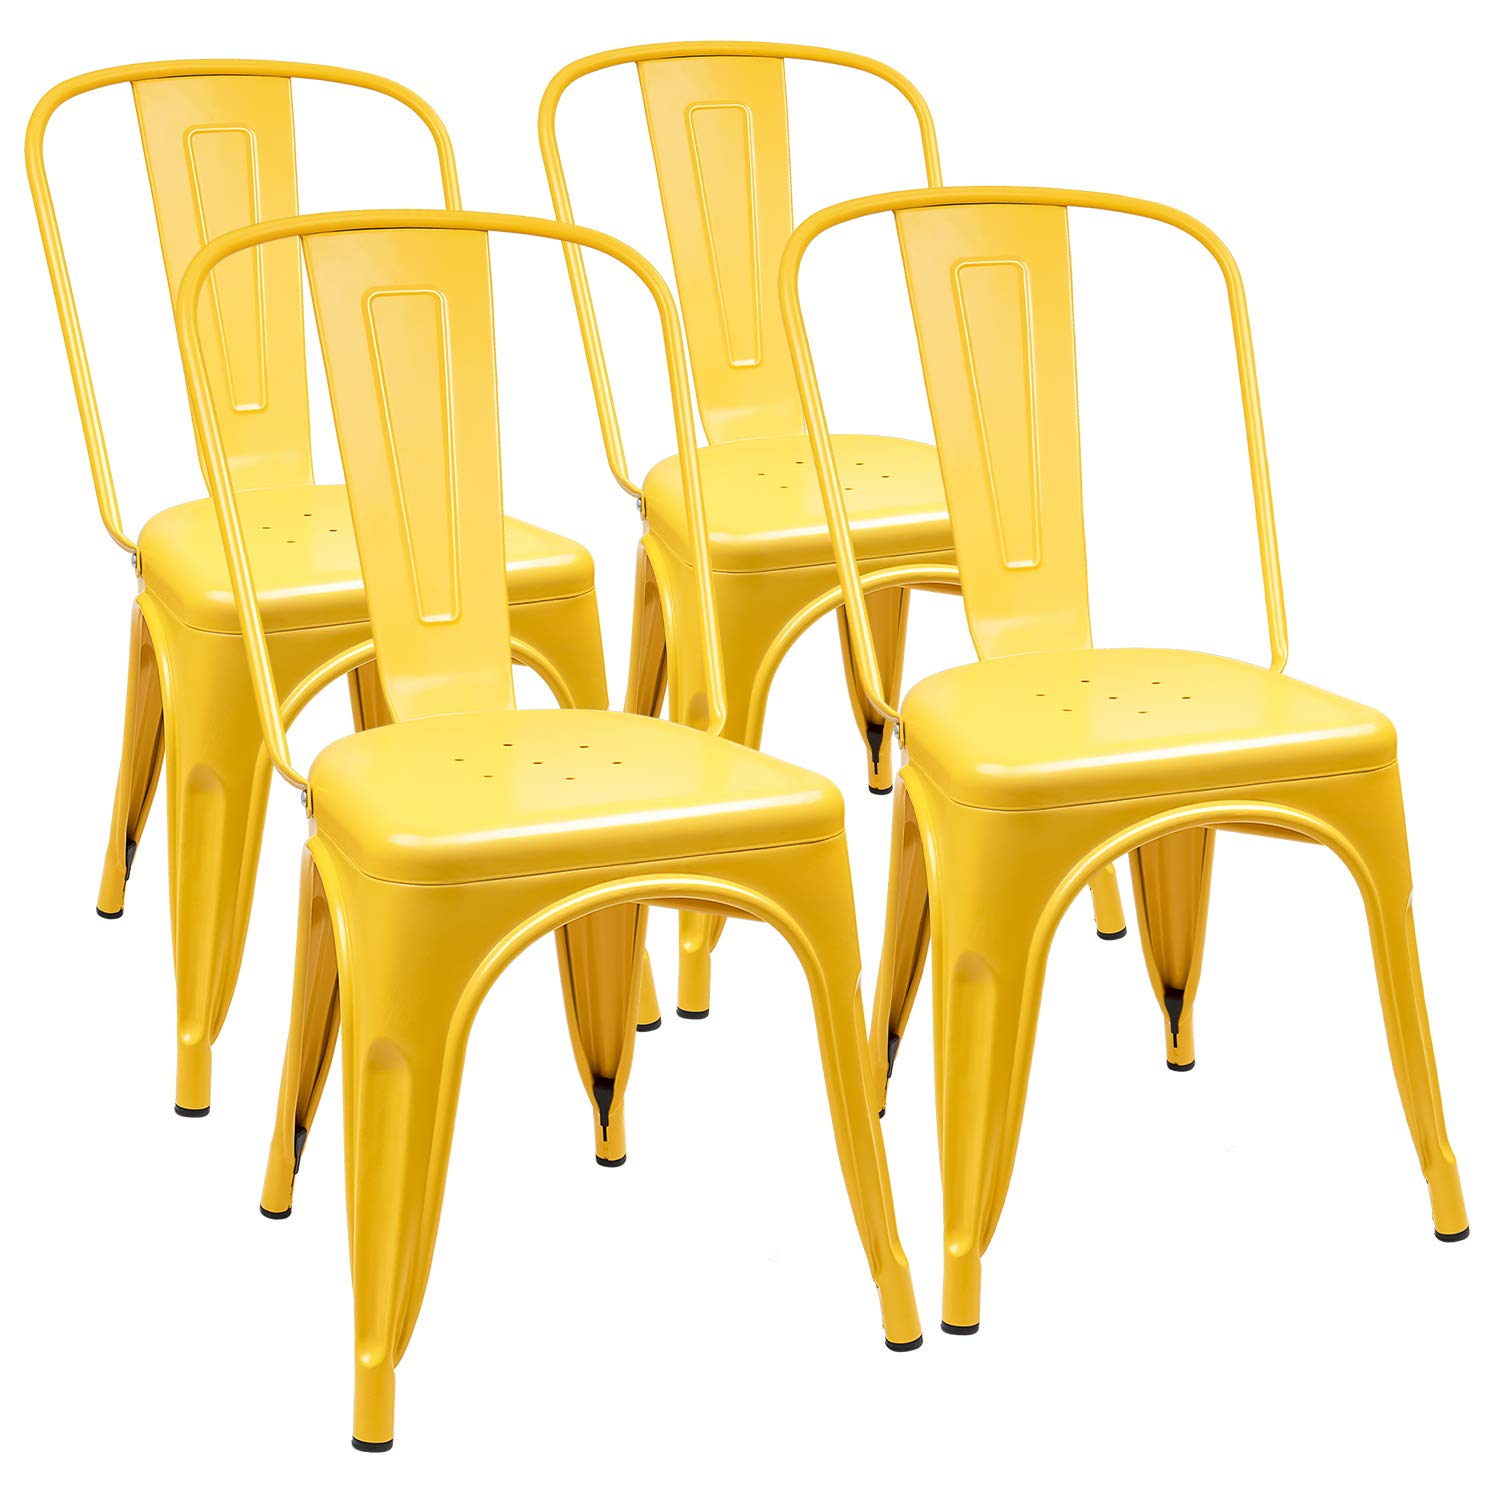 Furmax Metal Dining Chair Indoor-Outdoor Use Stackable Classic Trattoria Chair Chic Dining Bistro Cafe Side Metal Chairs Set of 4 (Yellow)